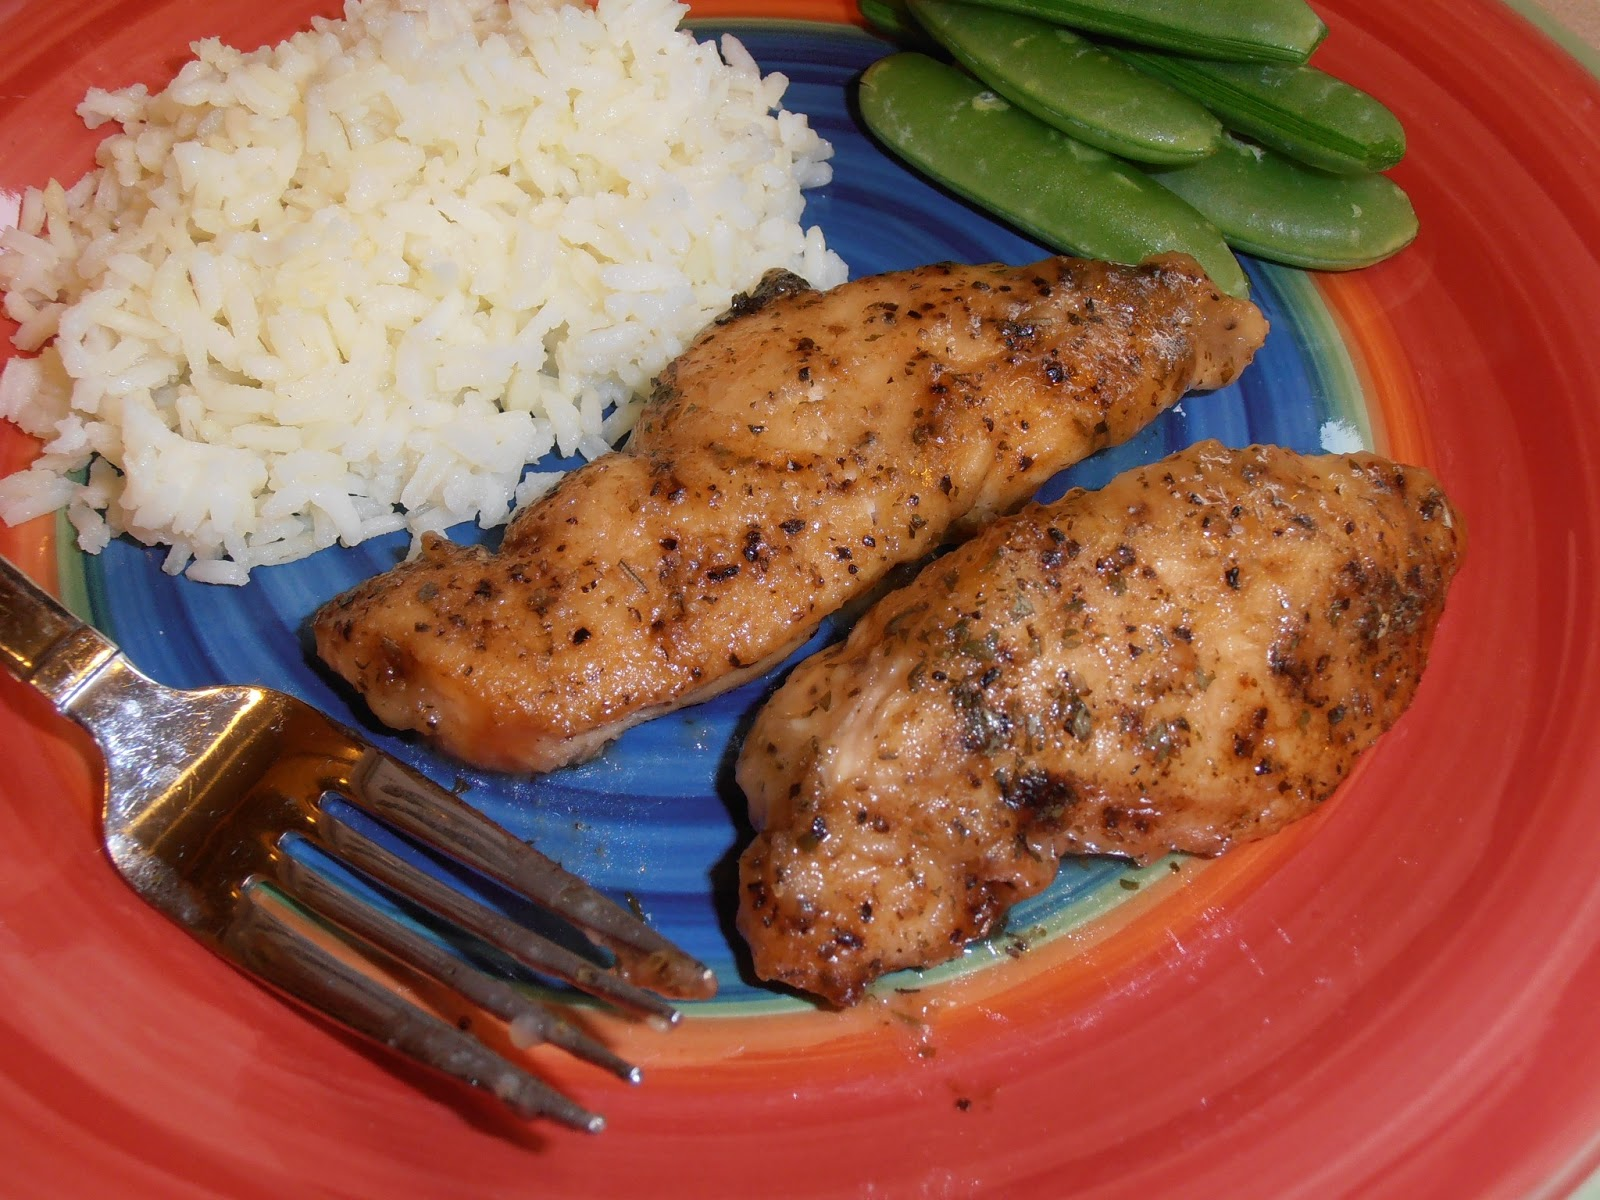 I Can't Believe It's Gluten-Free: Yummy Lemon Herb Chicken